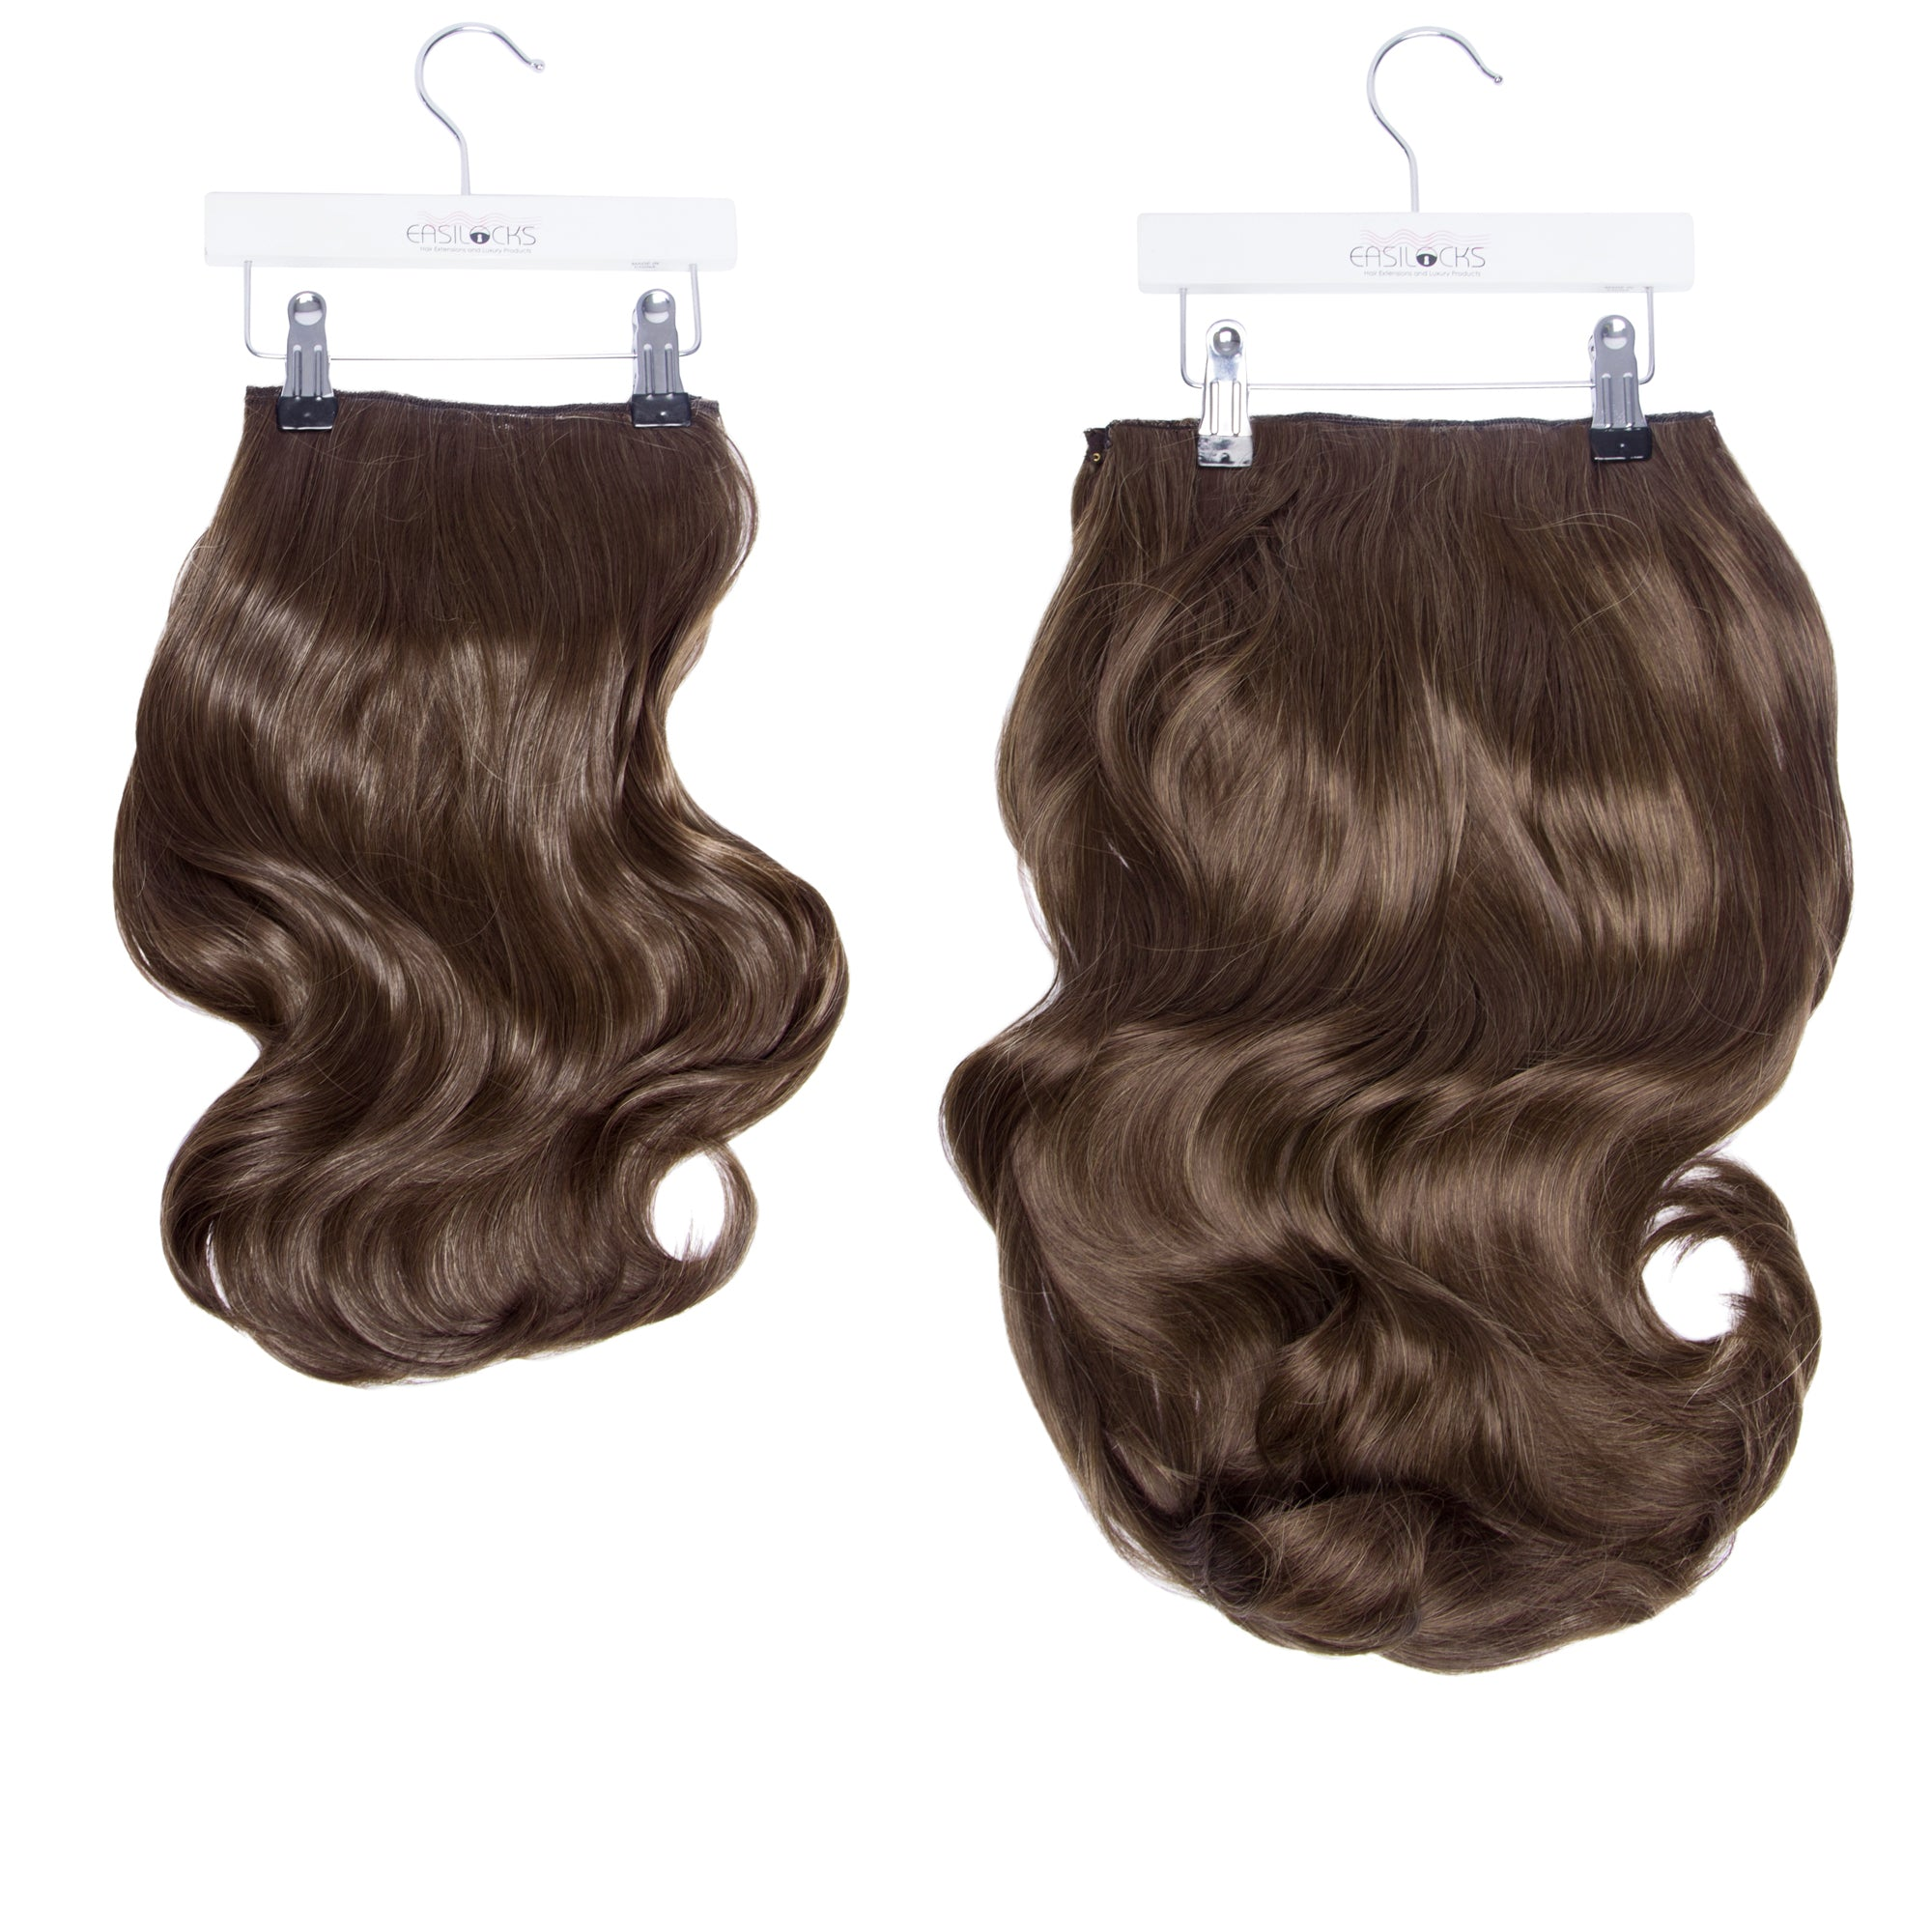 "Megan's Bouncy Blow HD Fibre Hair Extensions - 14"" & 22"" - Brown Cocoa (39436615689)"